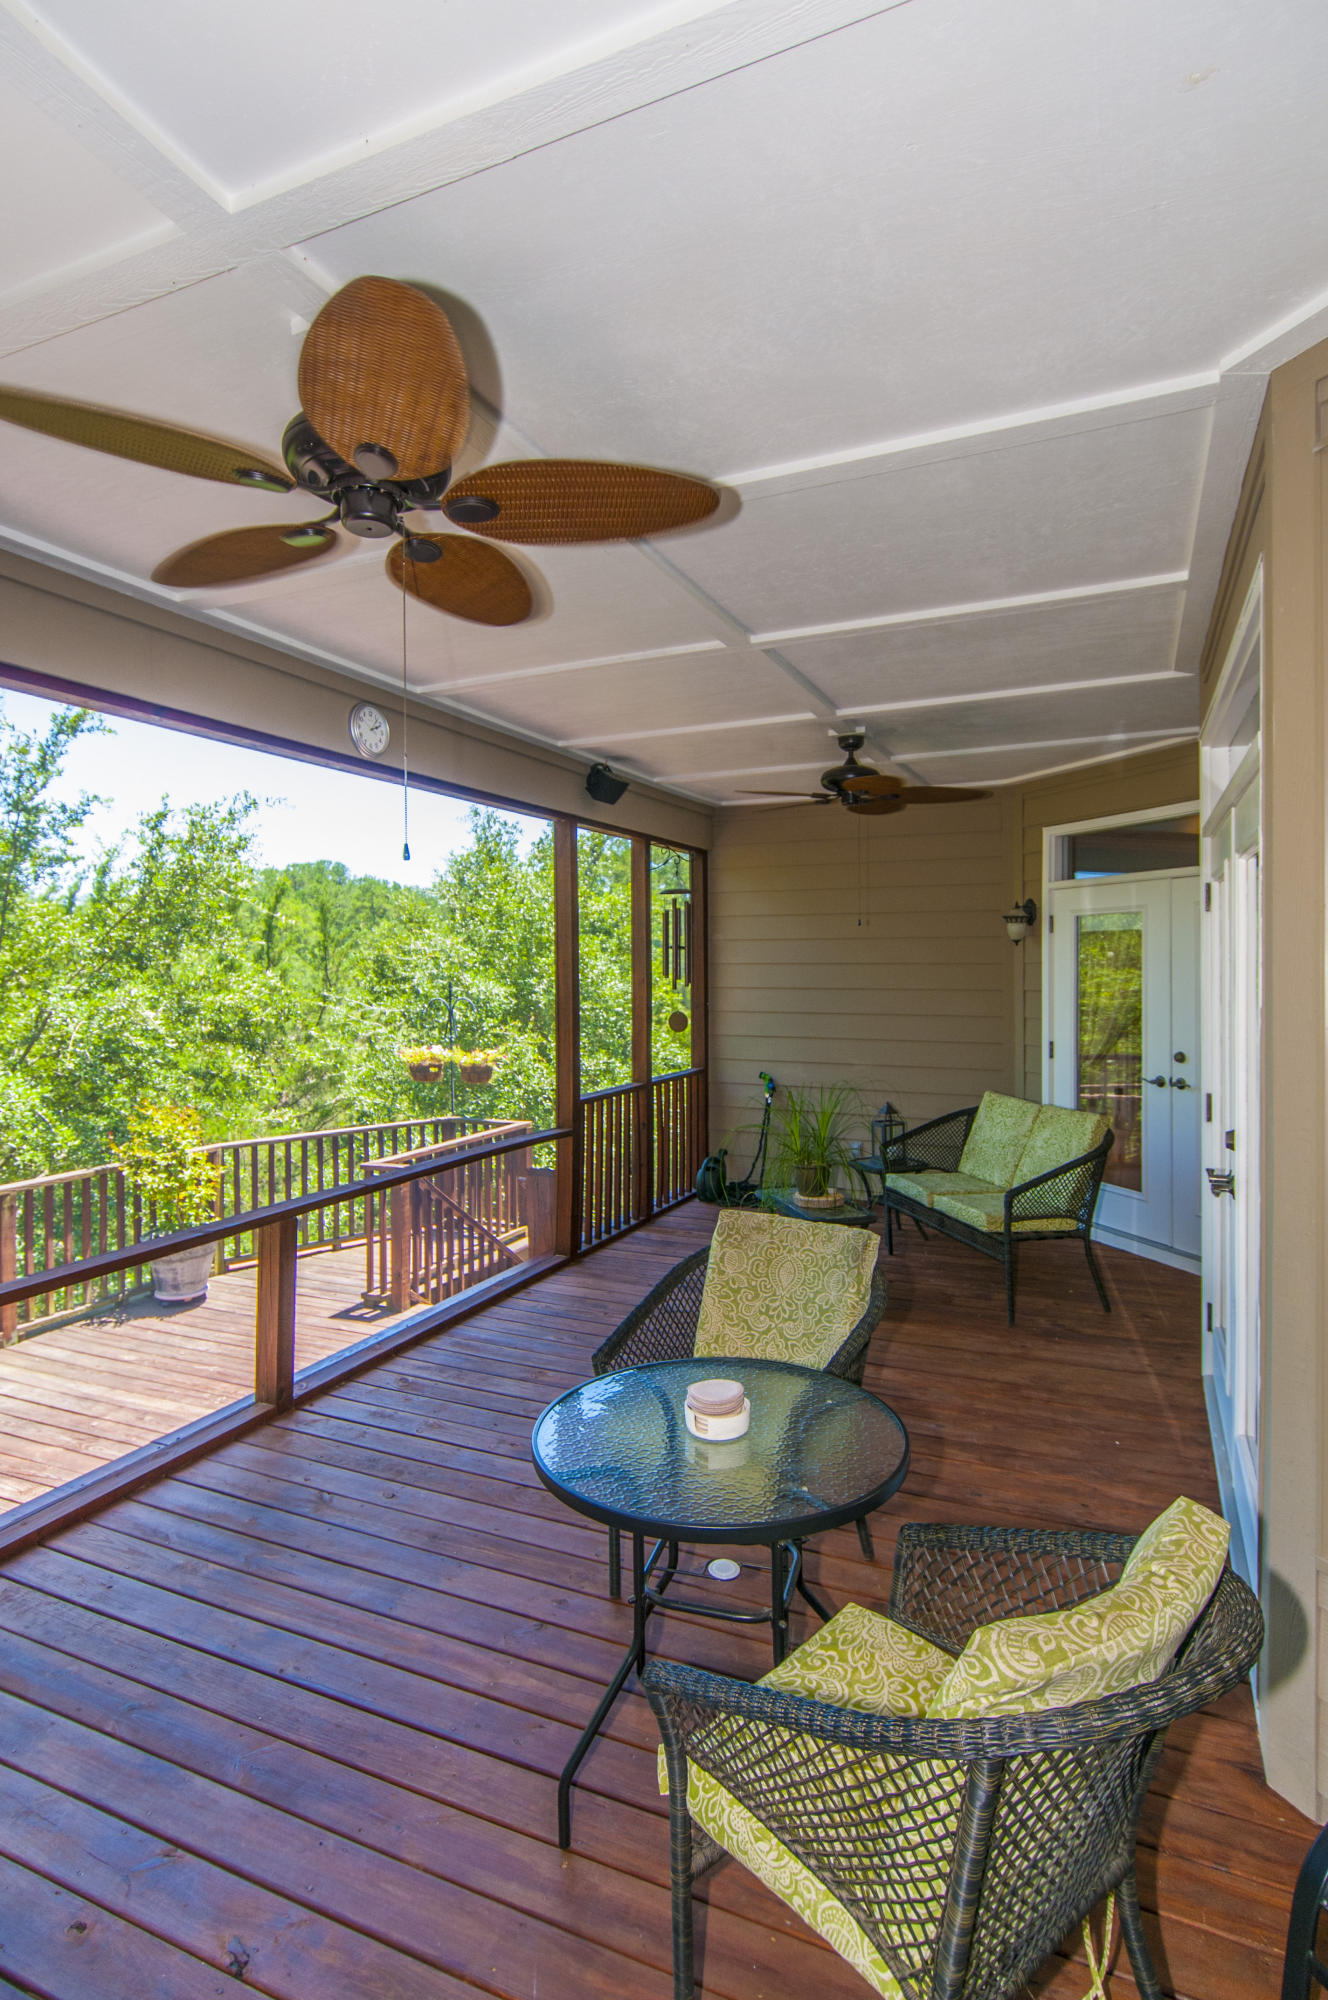 The Marshes at Rushland Landing Homes For Sale - 3022 Rushland Mews, Johns Island, SC - 24